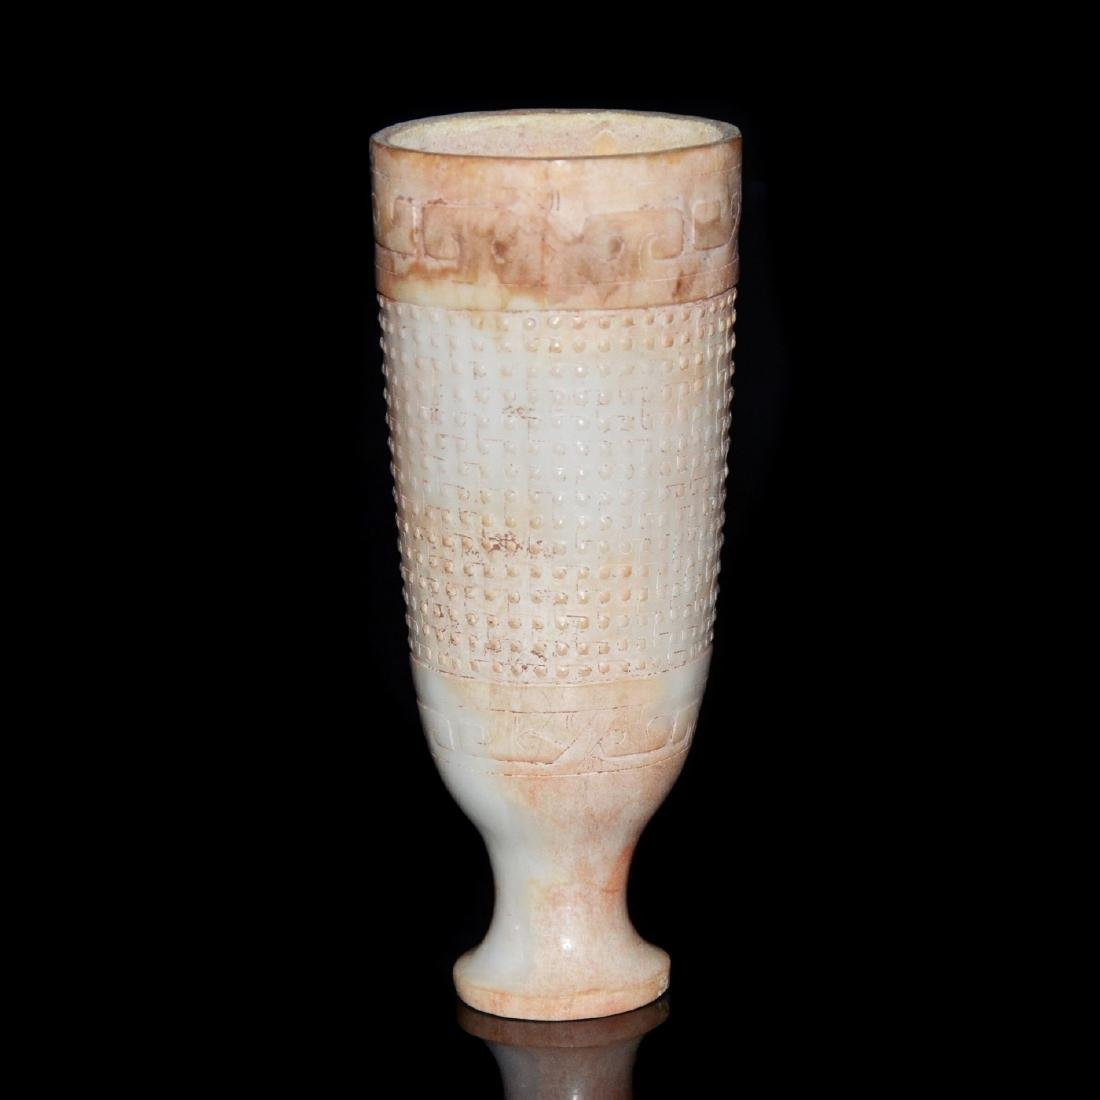 Qin Dynasty, A Very Rare Jade Stem Cup - 5